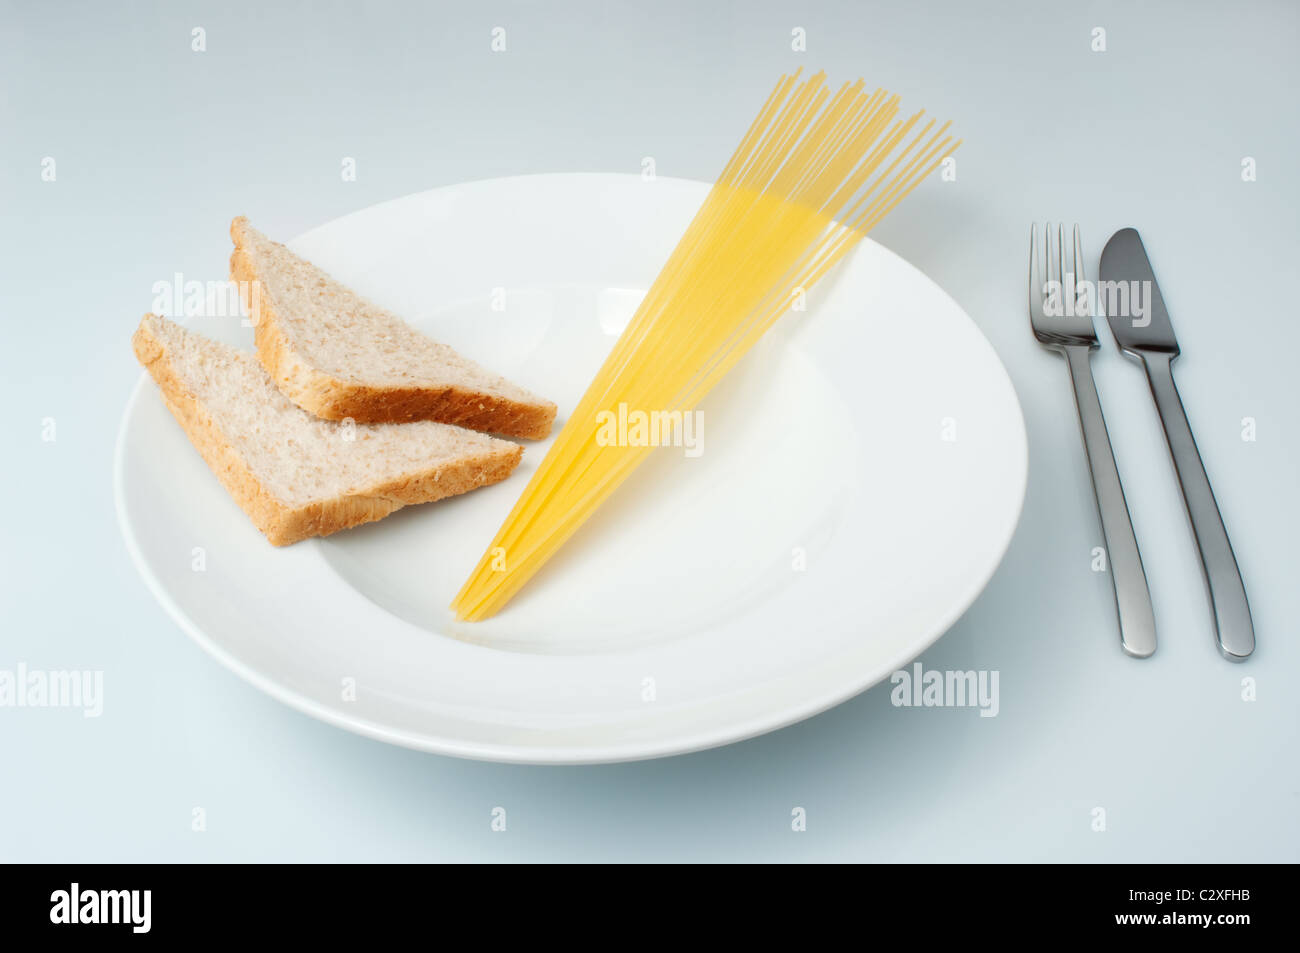 Bread and Pasta, Carbohydrates - Stock Image